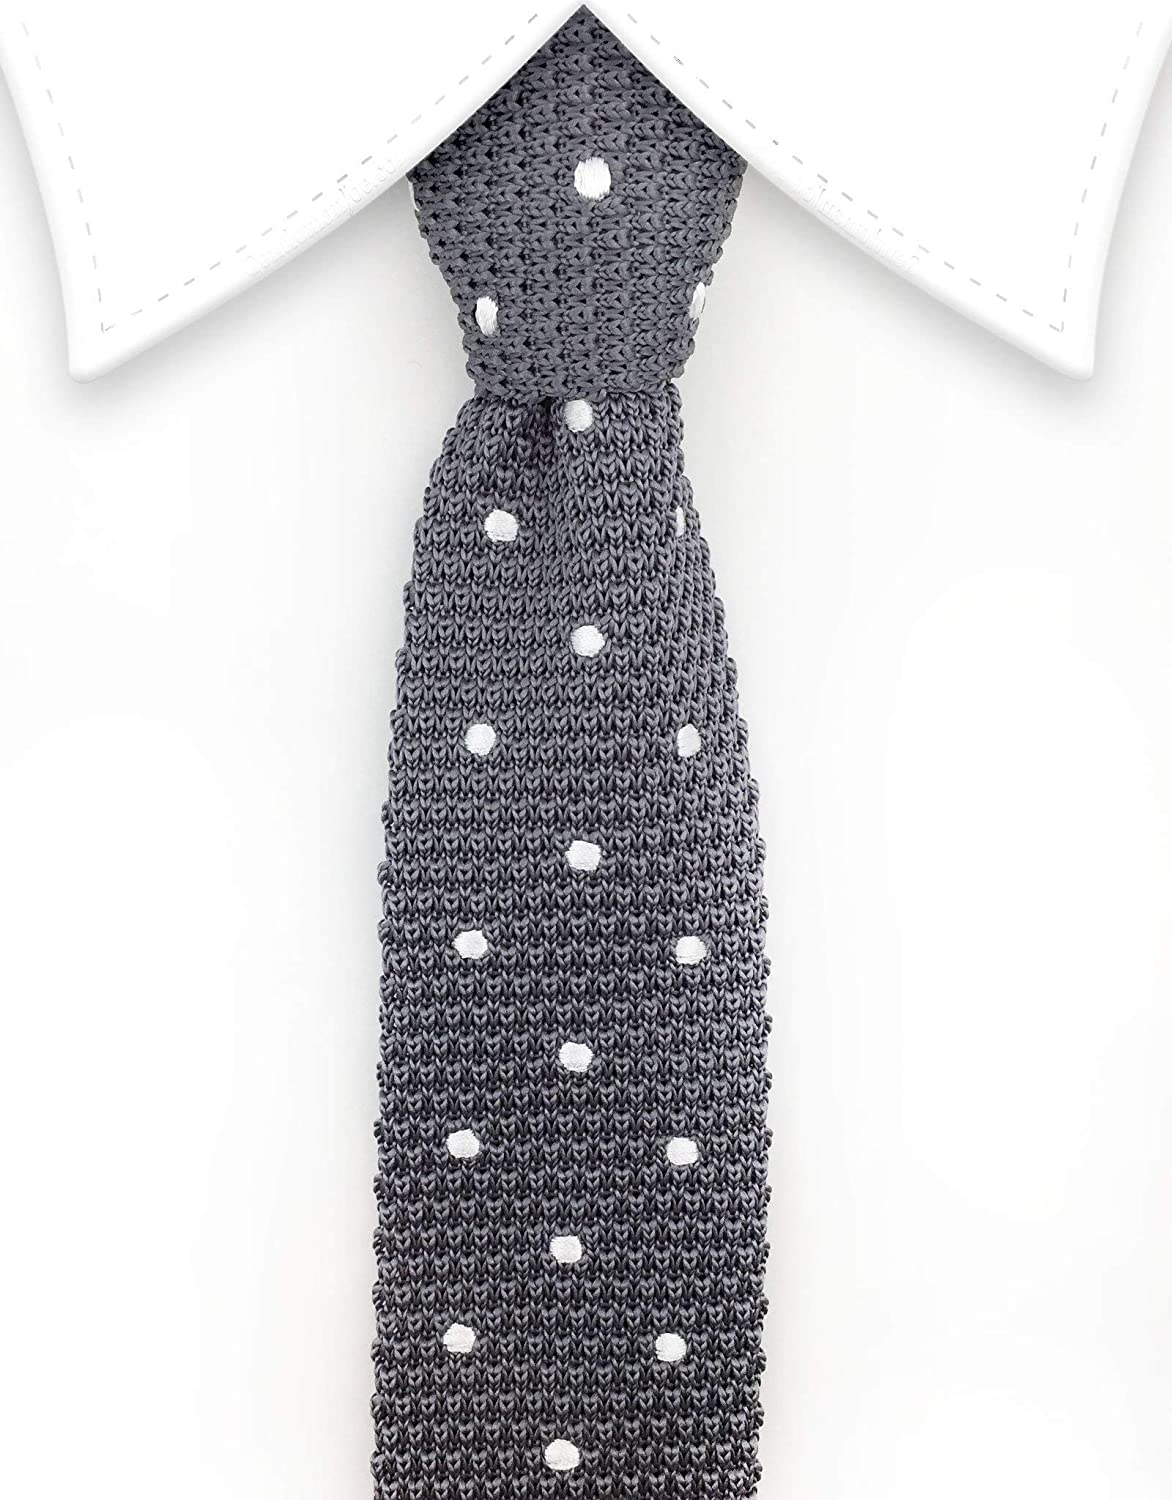 Gentleman Joe Gray Skinny Knit Tie With Silver Polka Dots Multicolored